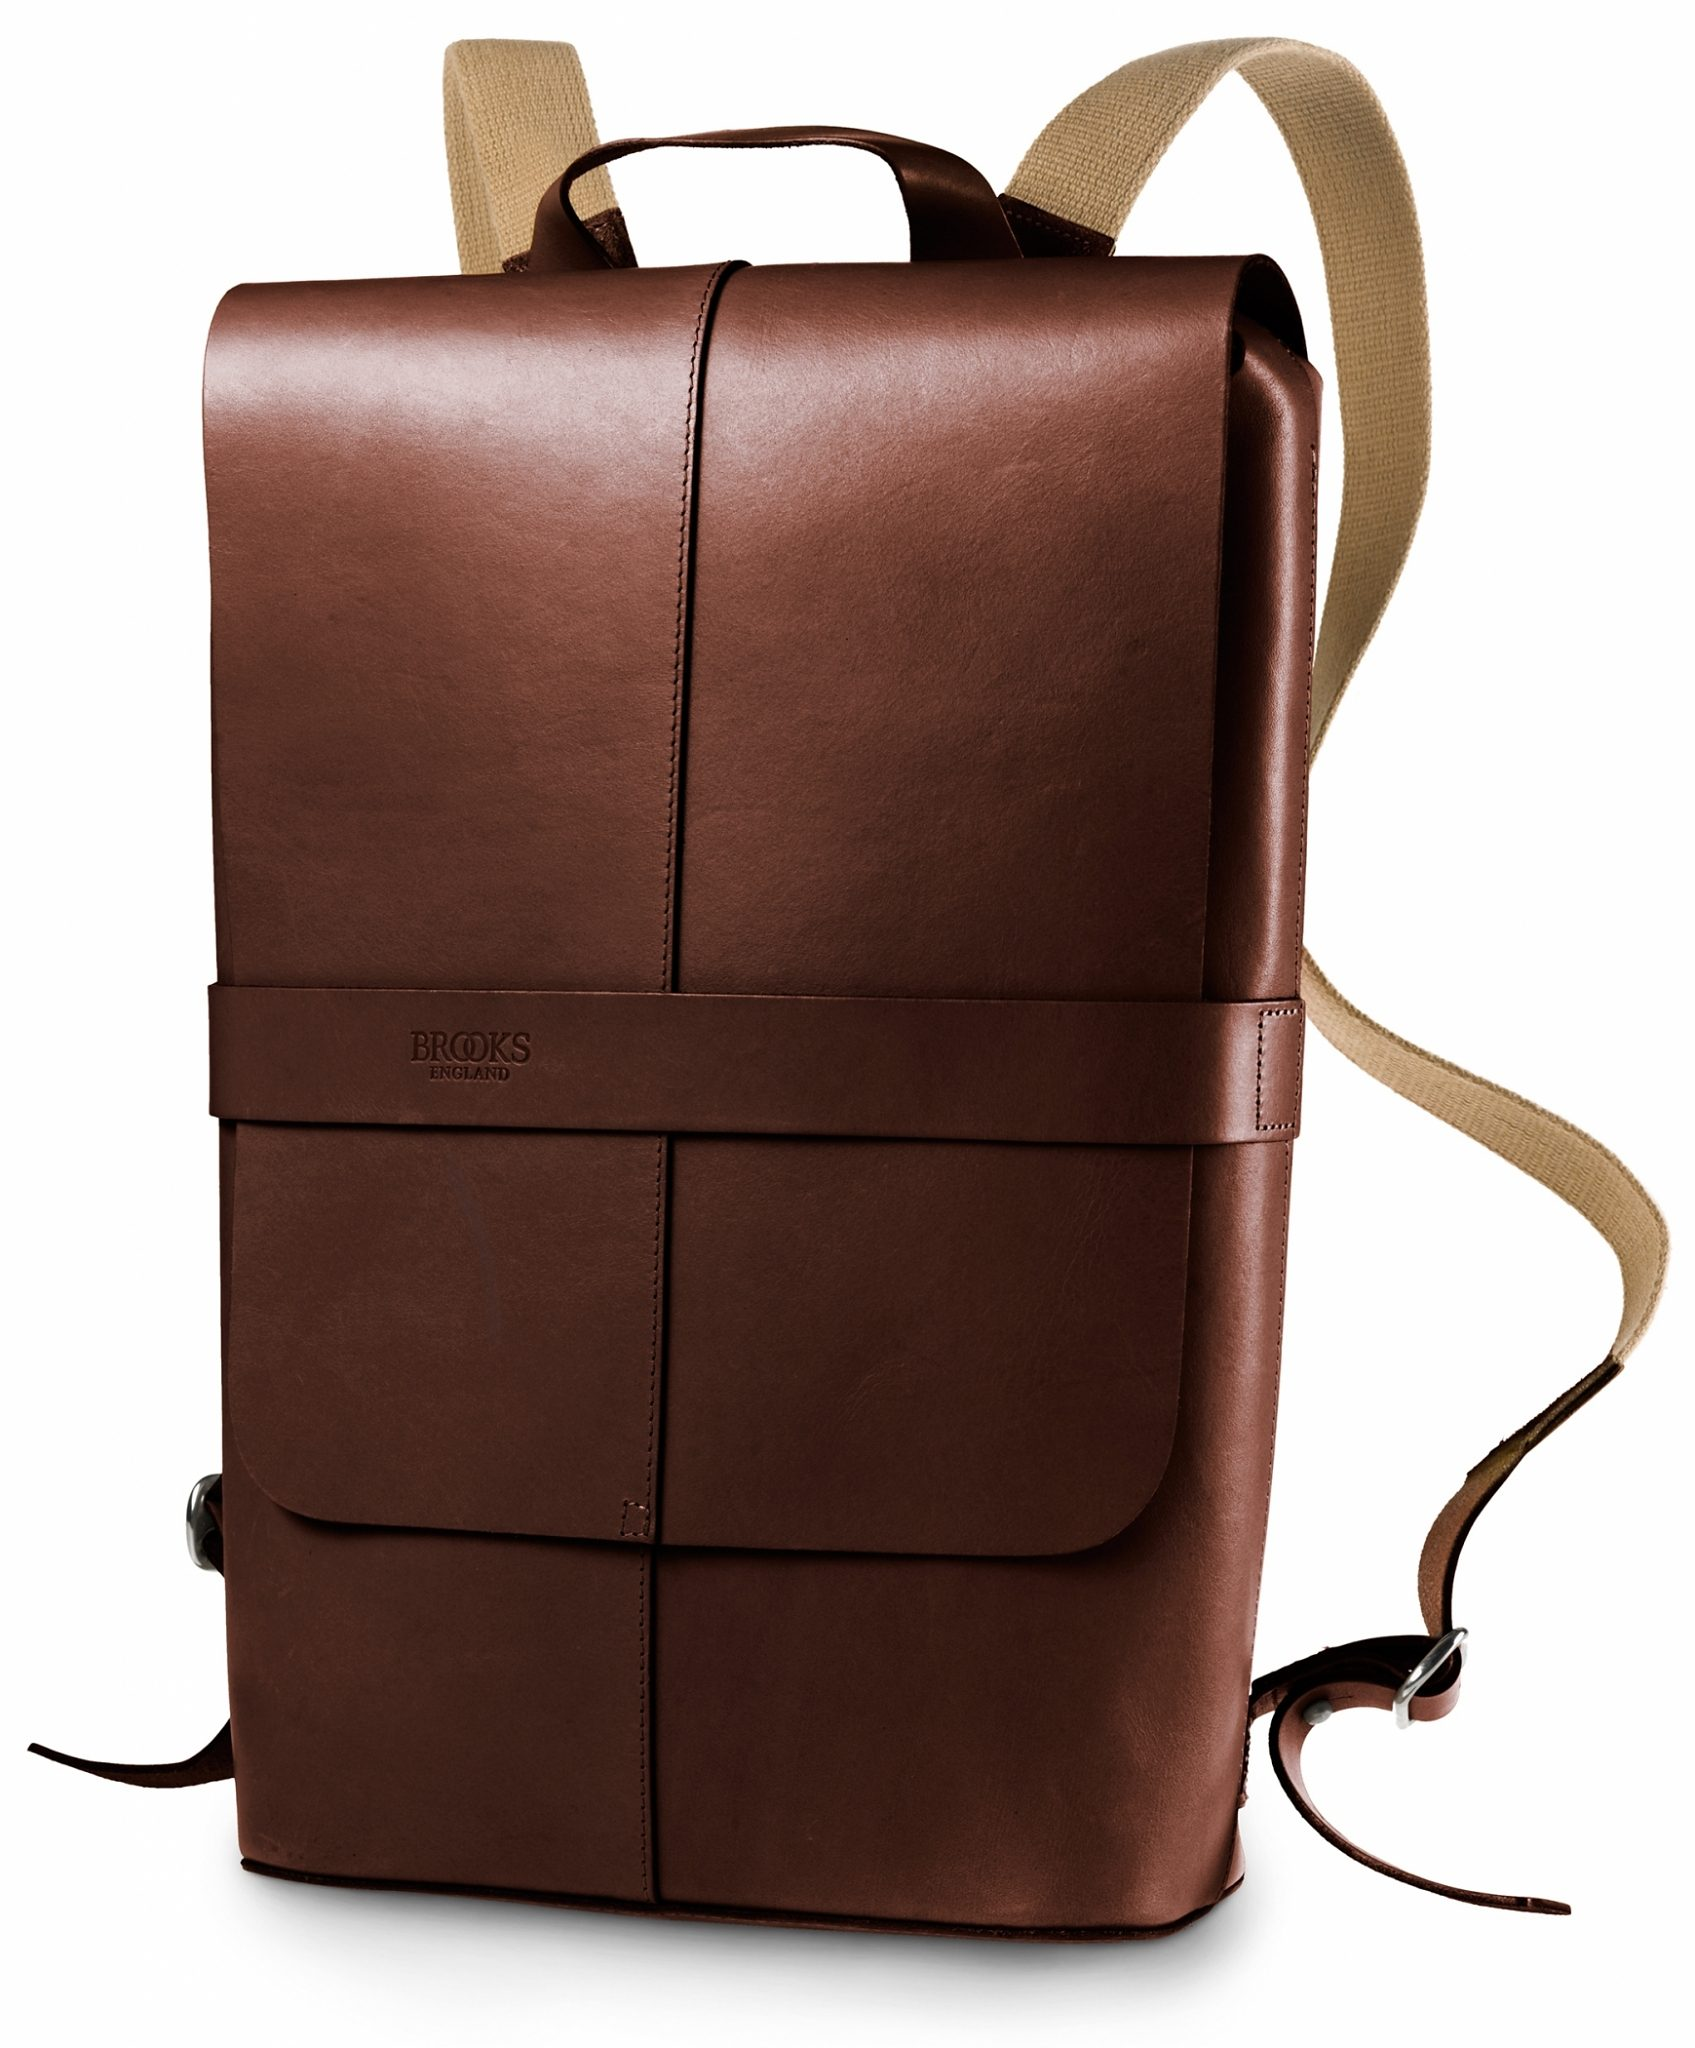 Brooks Rucksack »Piccadilly Knapsack Leather 10,5 L«